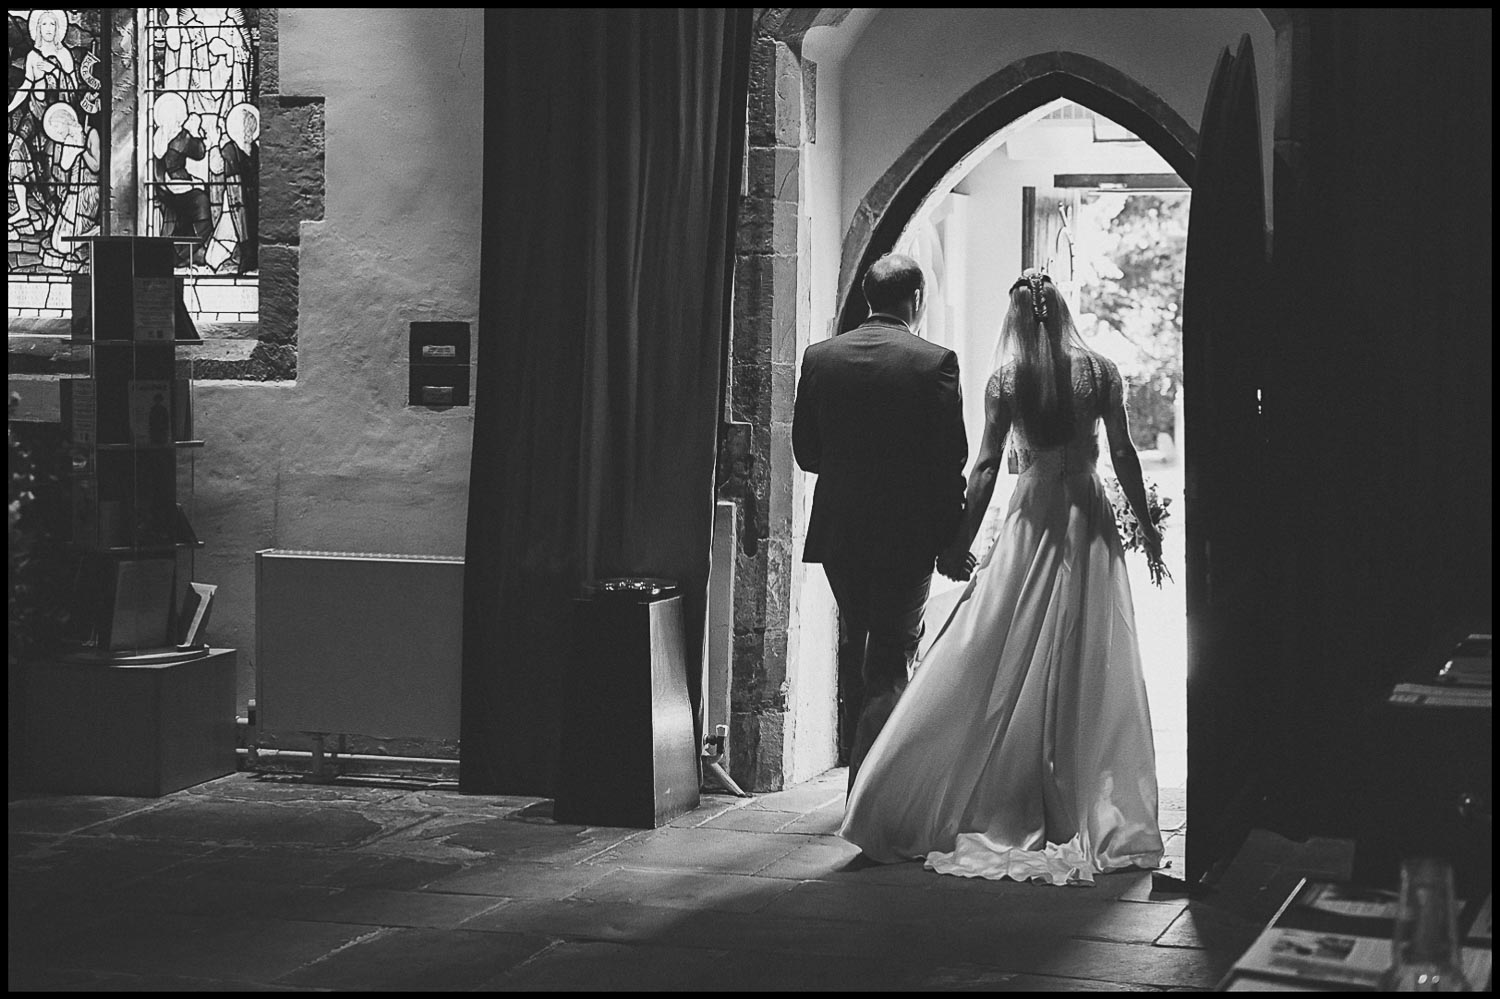 reportage-wedding-photographer-london.jpg